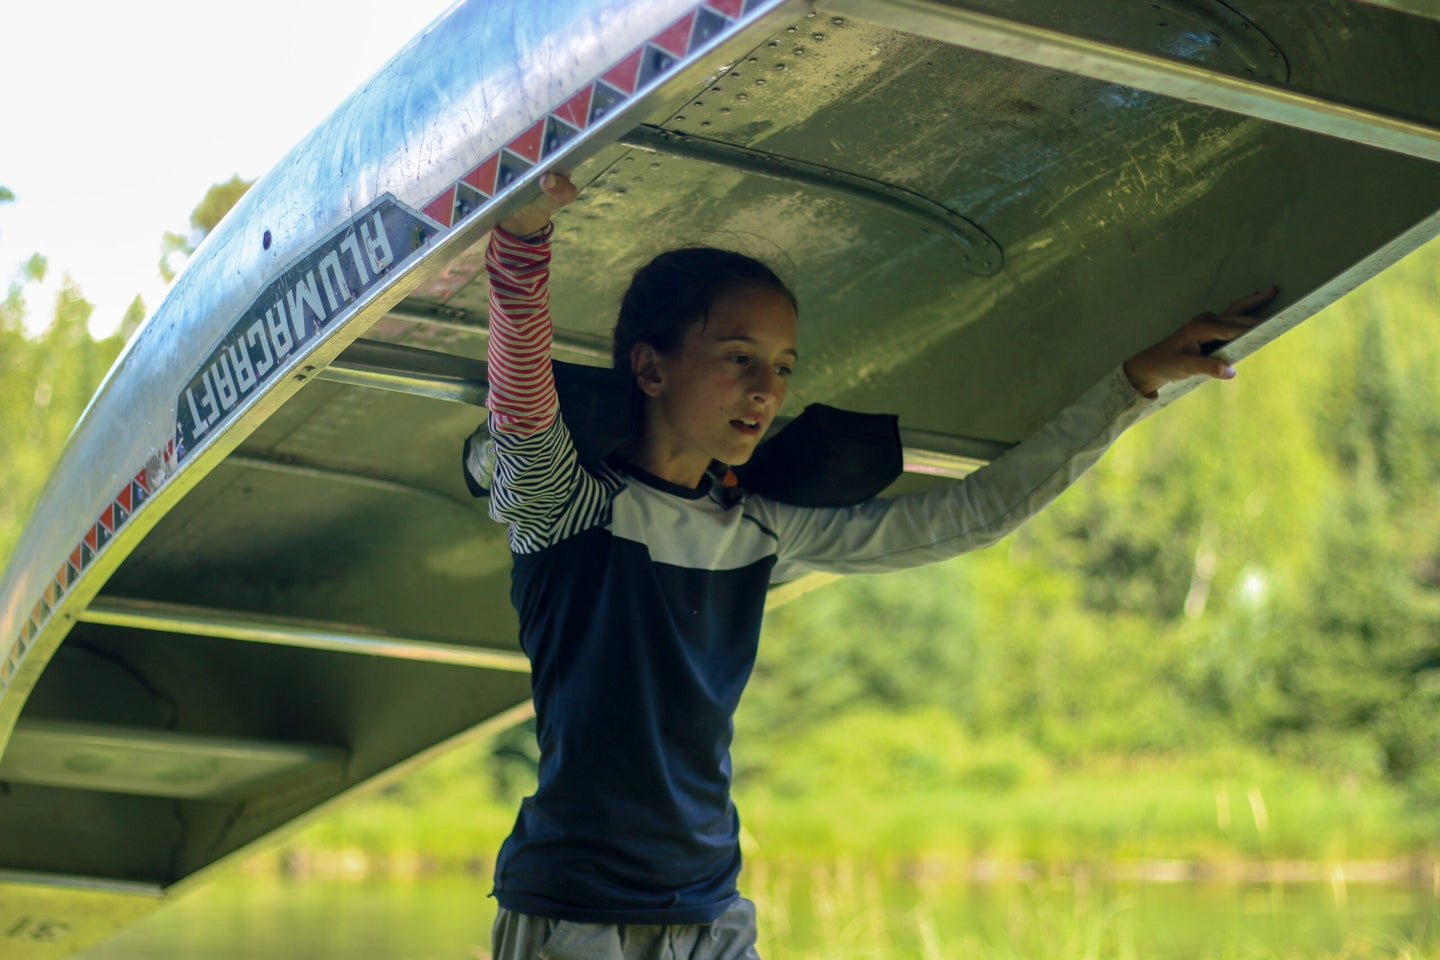 A girl carries an aluminum canoe on her shoulders during a portage.